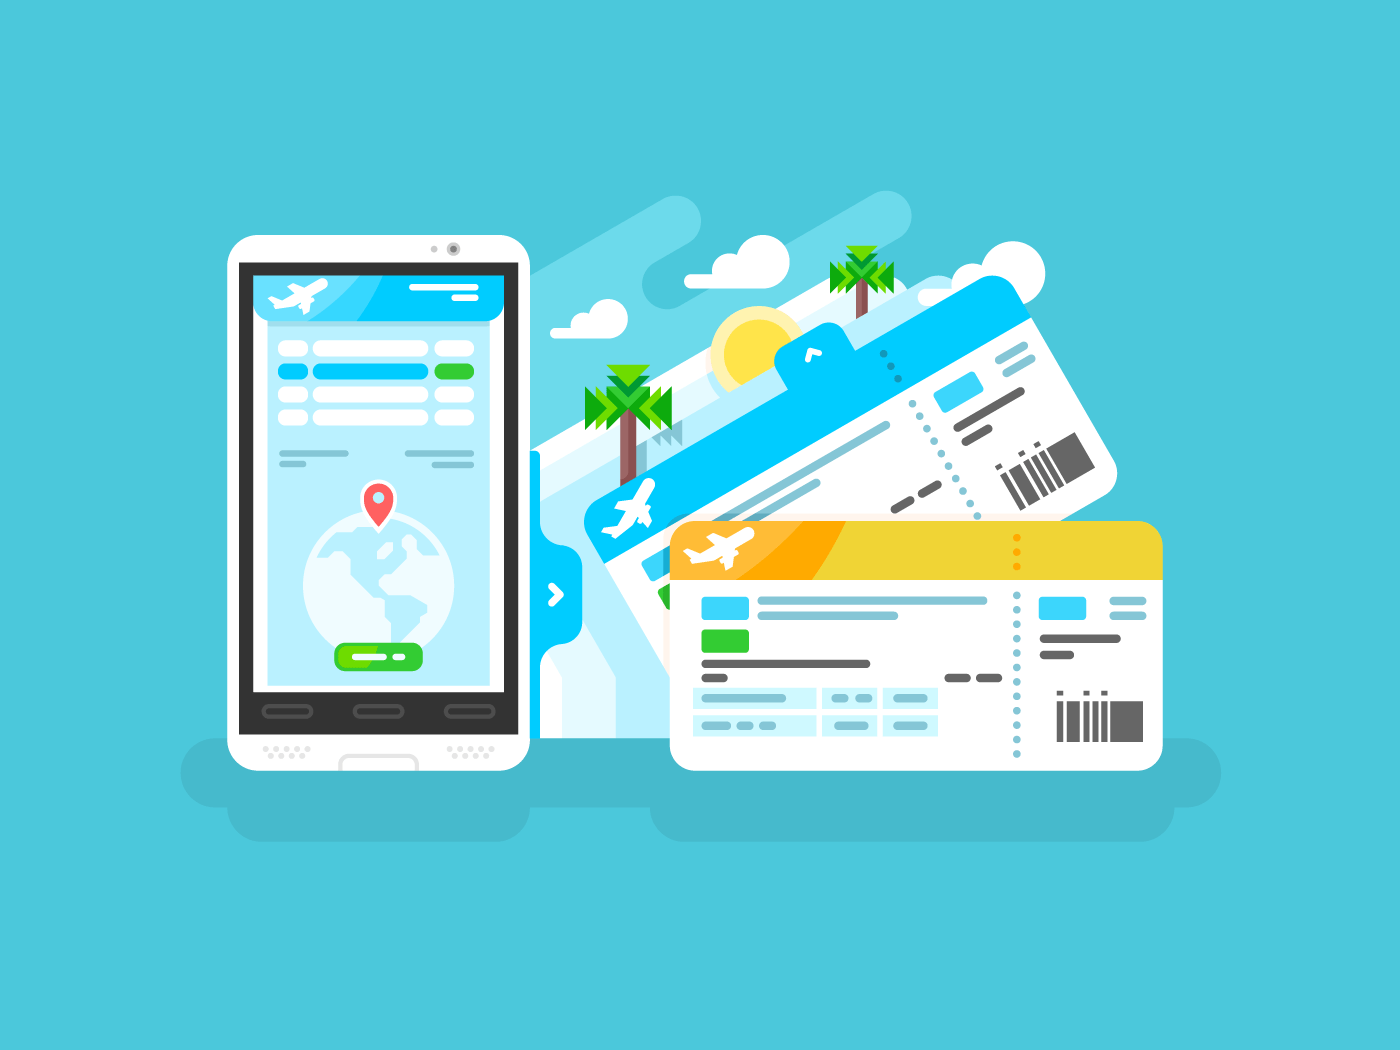 Tickets for the plane on a smartphone flat vector illustration